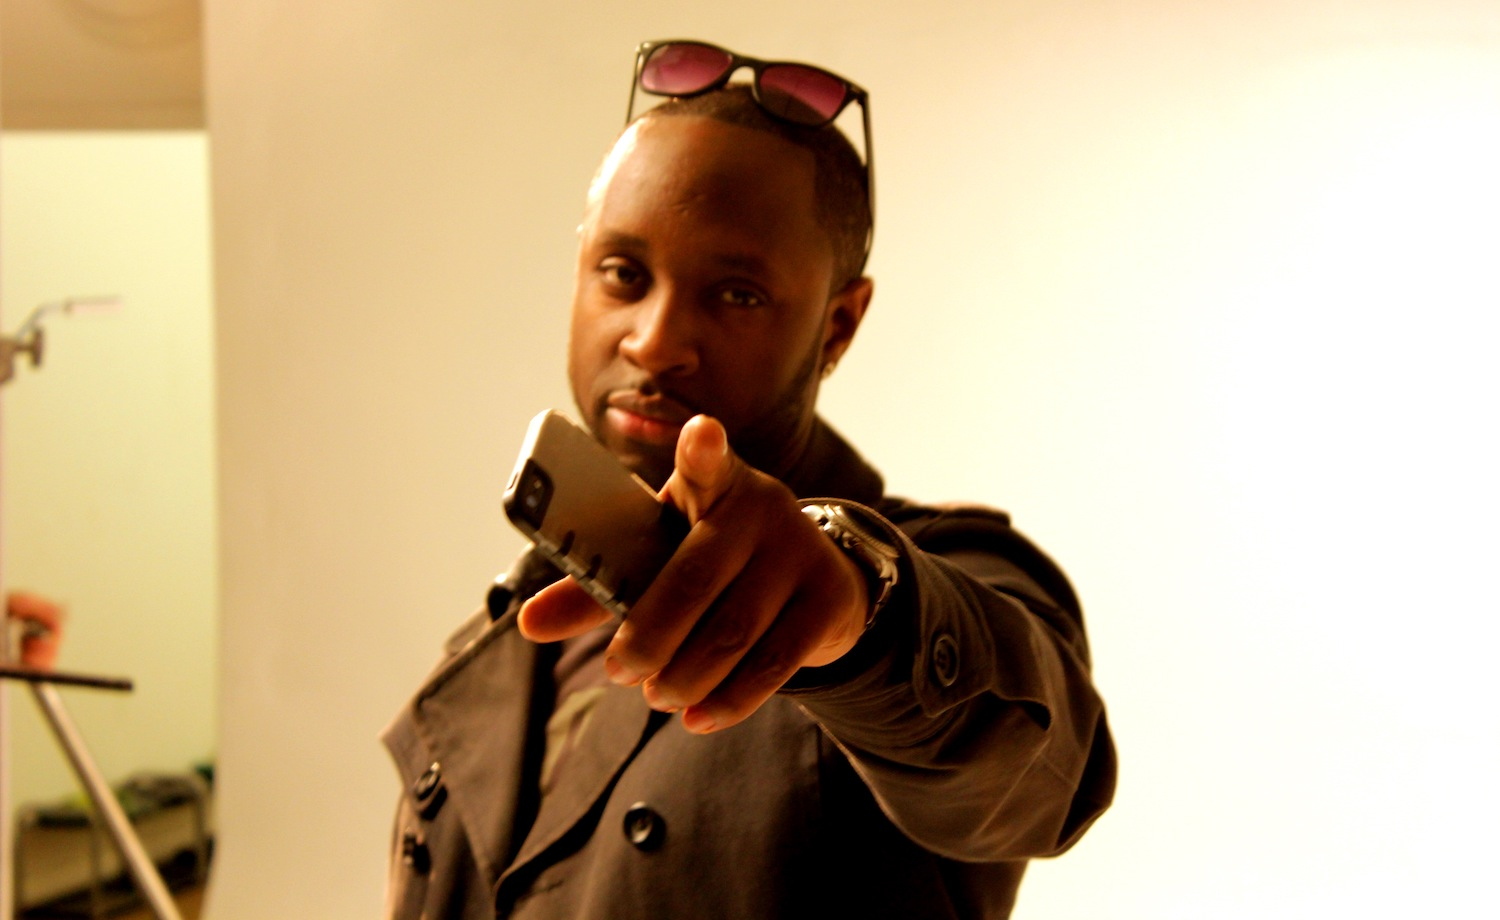 Professional Photography Closeup Of Black Man In Khaki Jacket Wearing Sunglasses Holding Phone Pointing To Camera On White Studio Backdrop